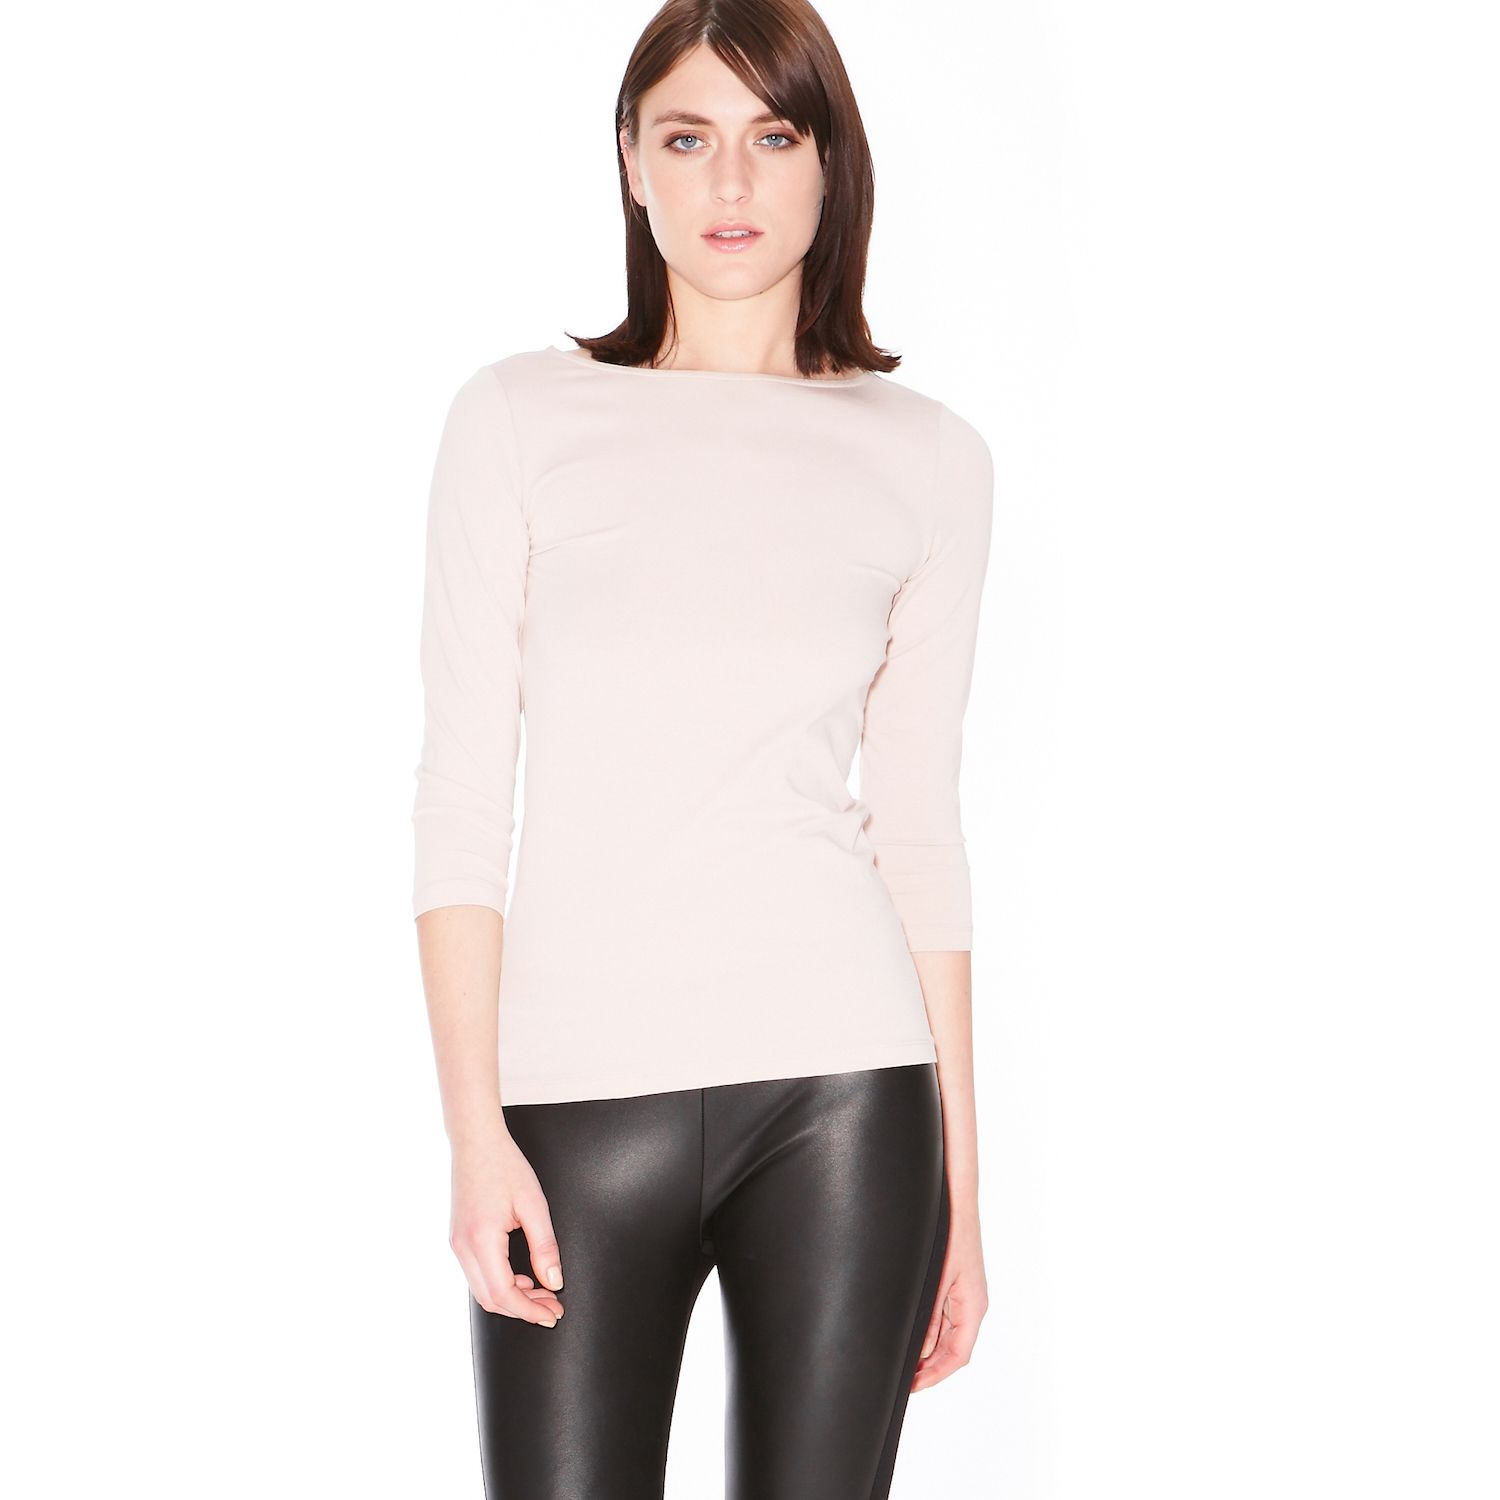 Boatneck long sleeve top